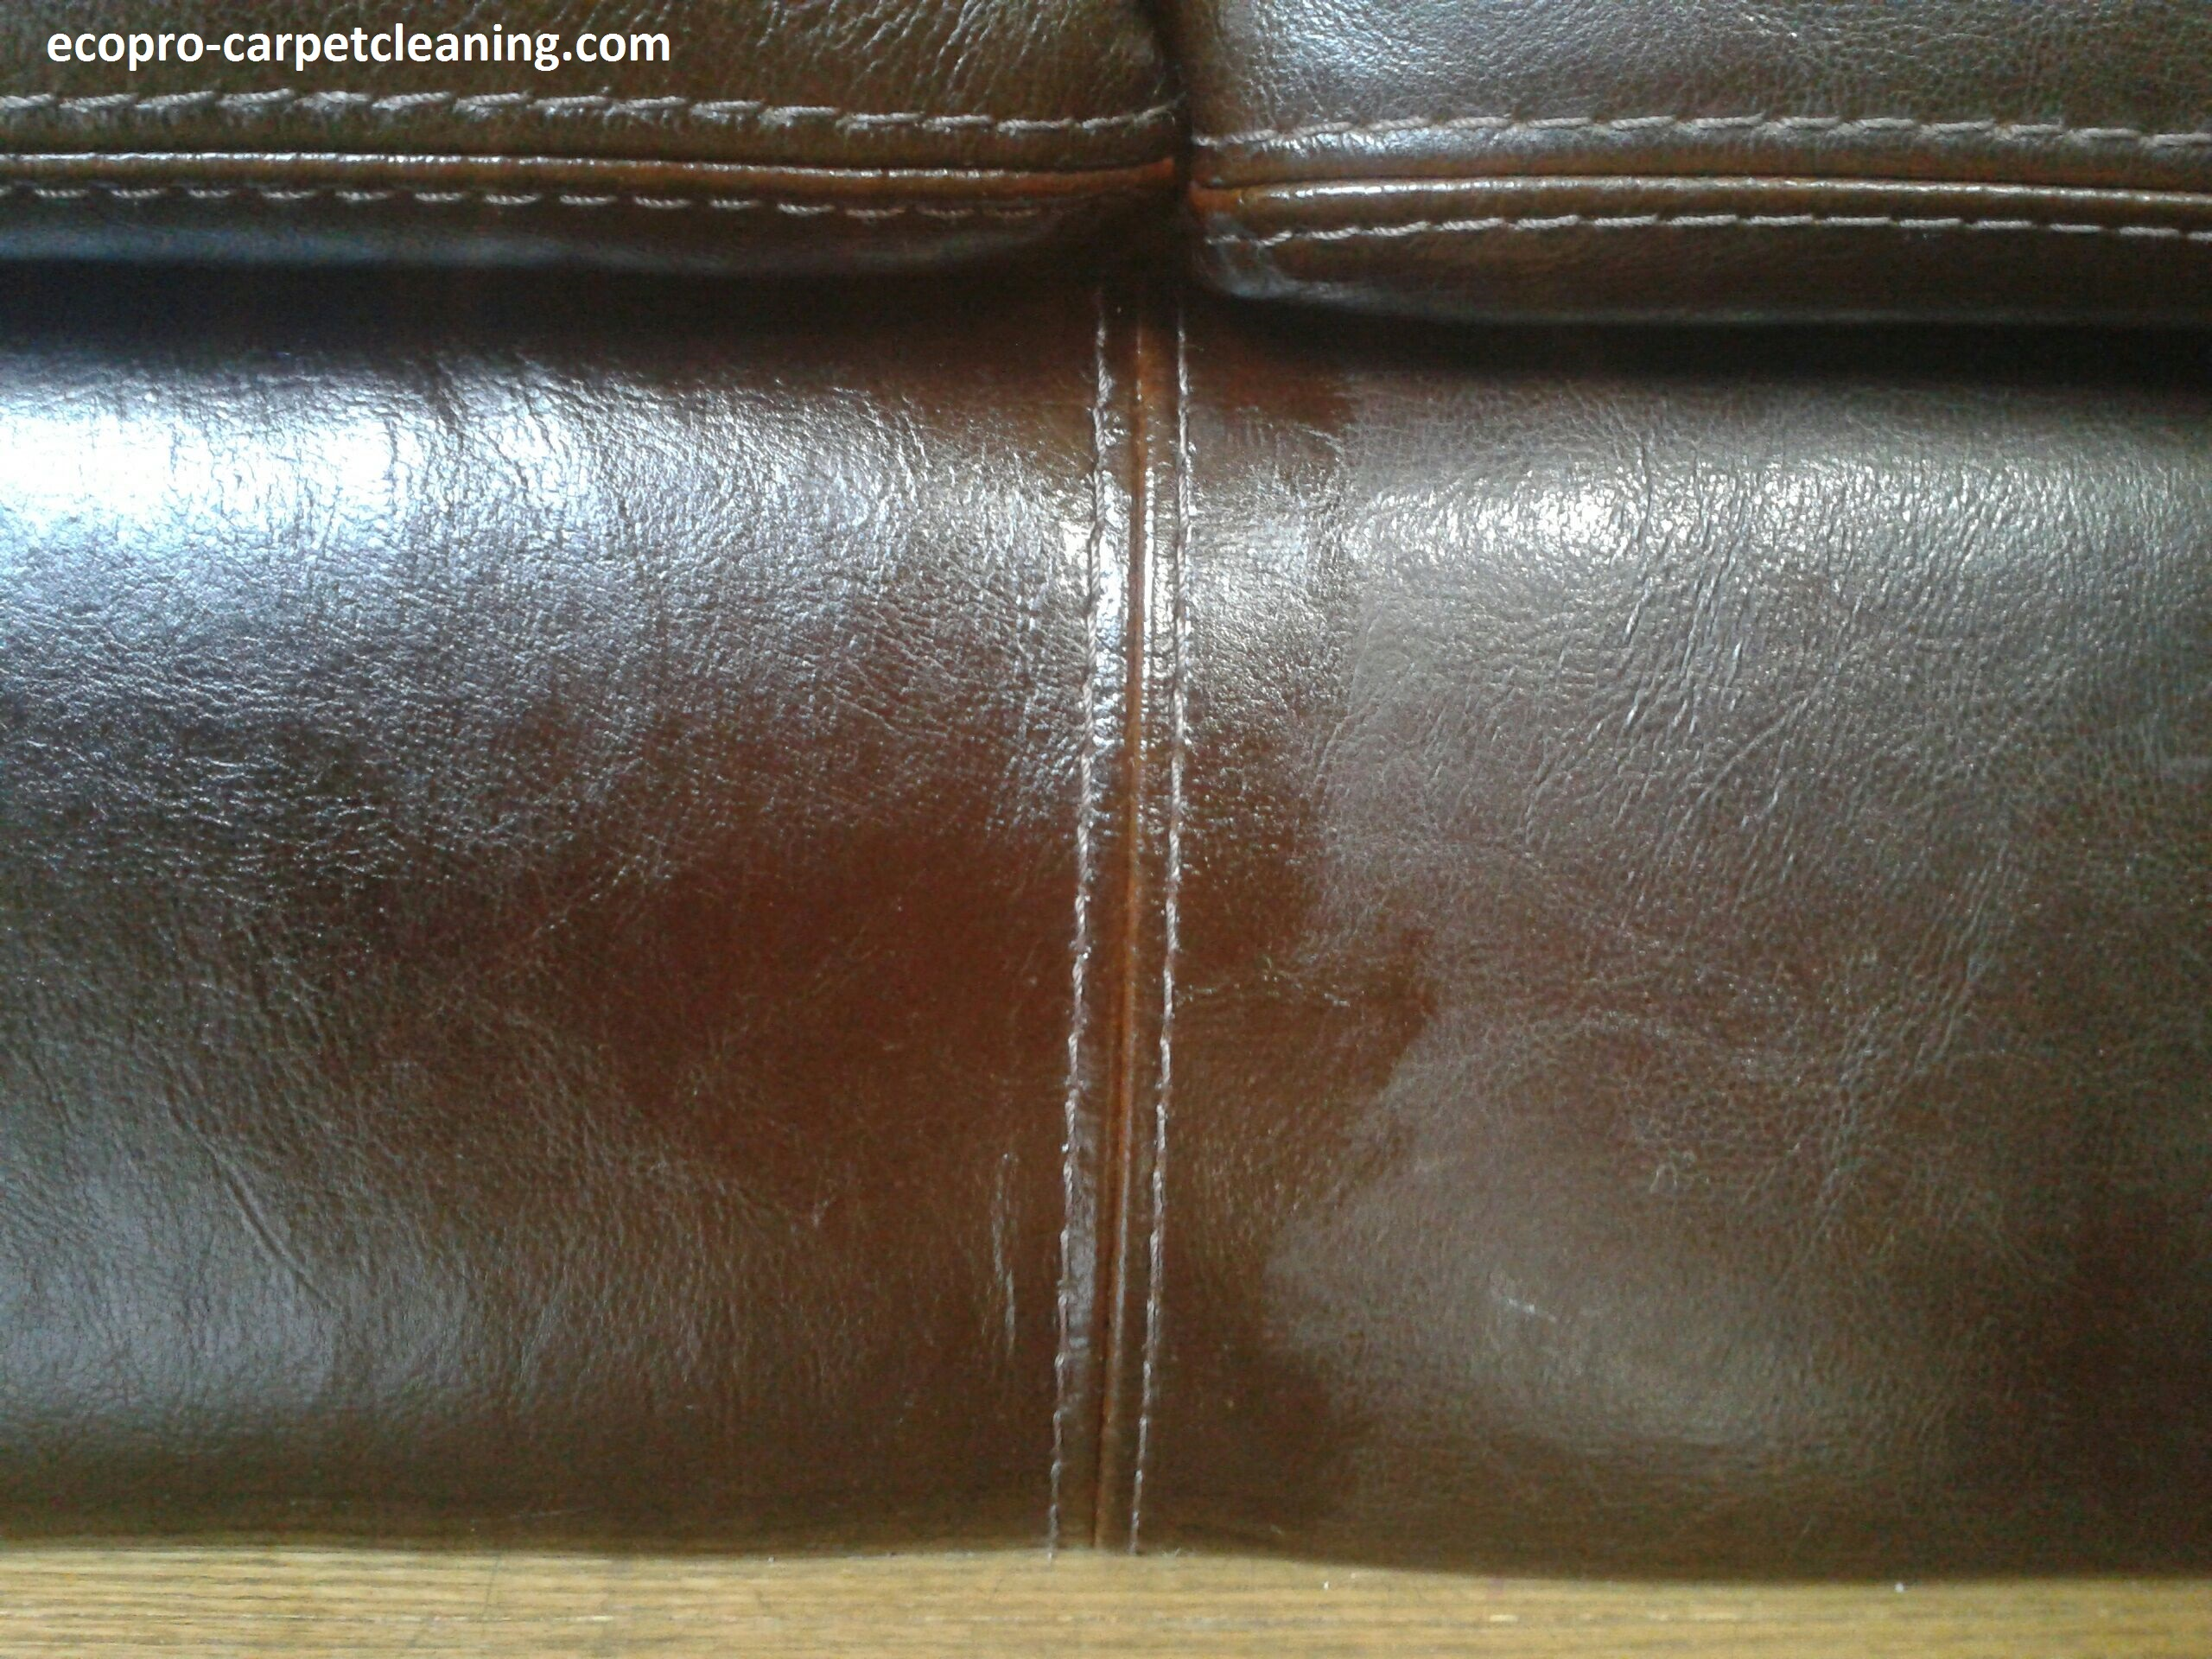 Leather Furniture Cleaner. Ashley Furniture Homestore Ashley ...